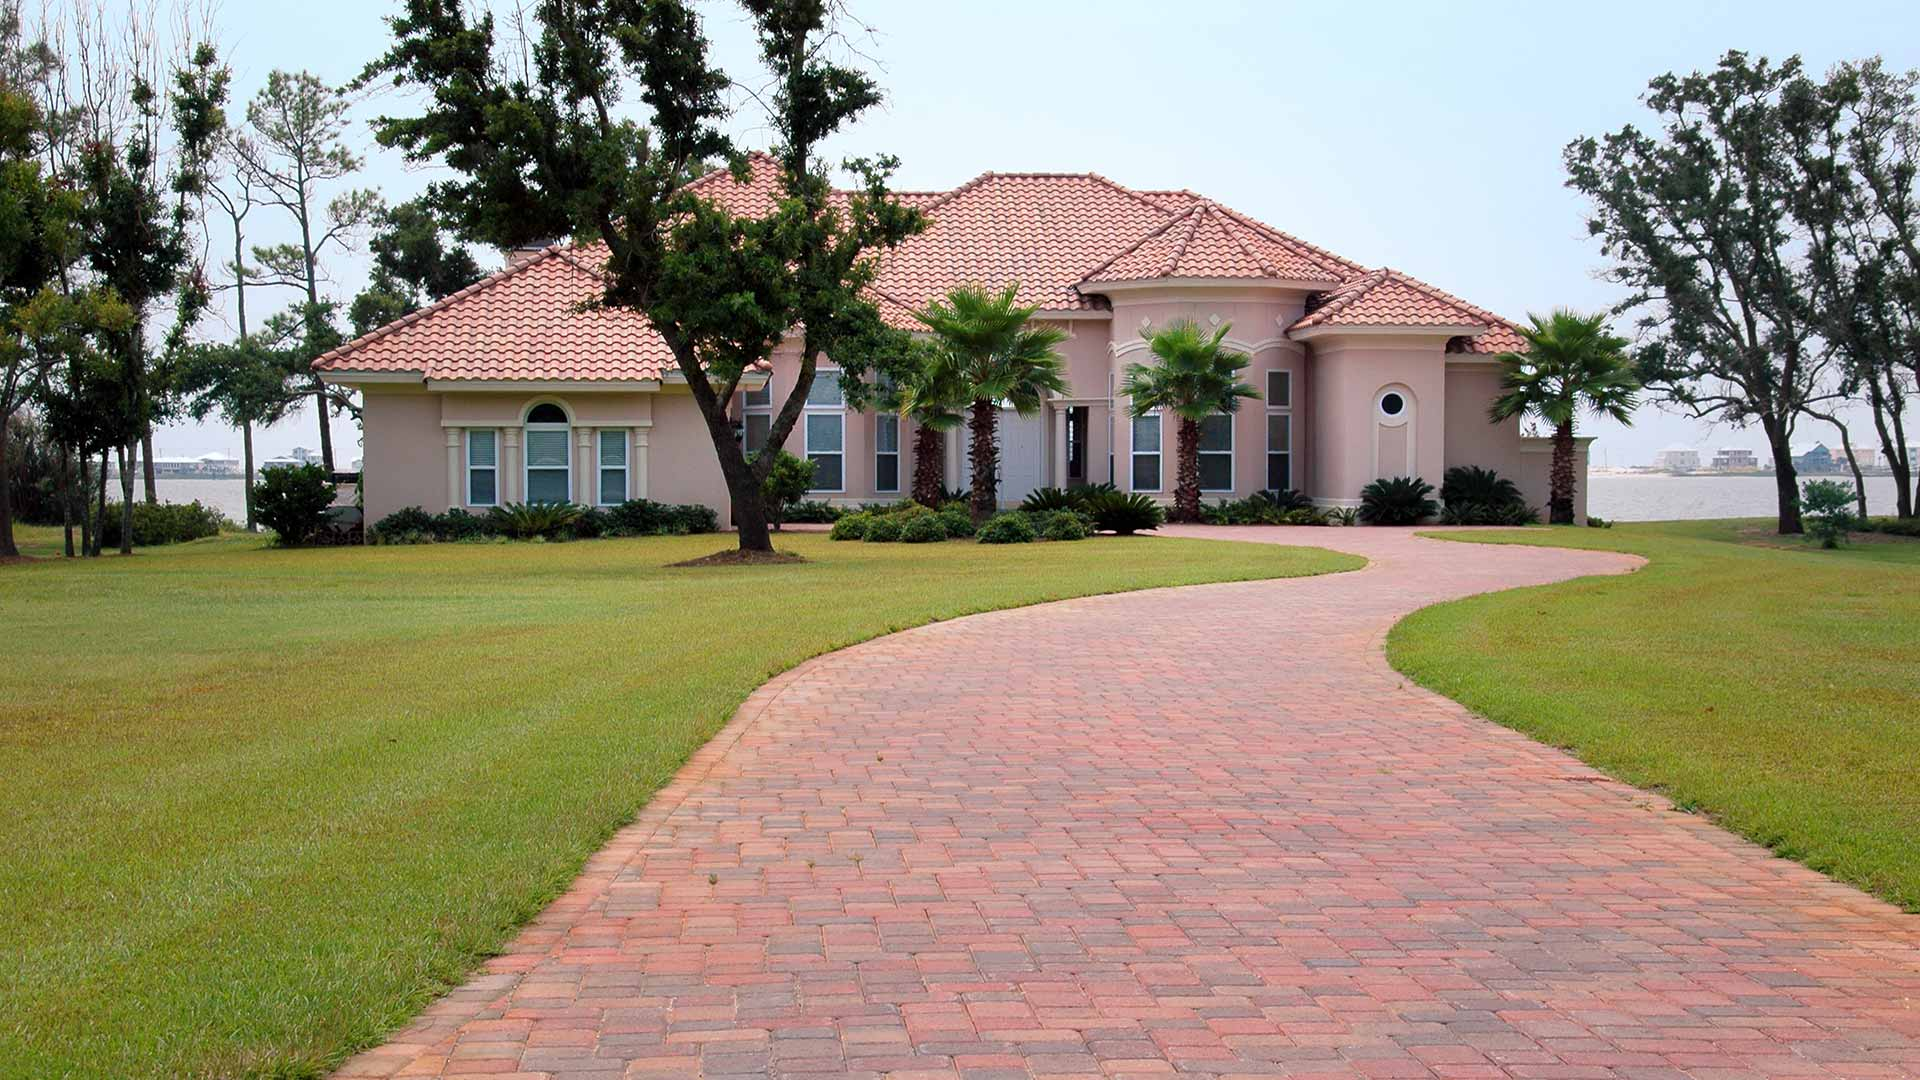 Beautiful decorative paver driveway leading up to a house in Orlando, FL.